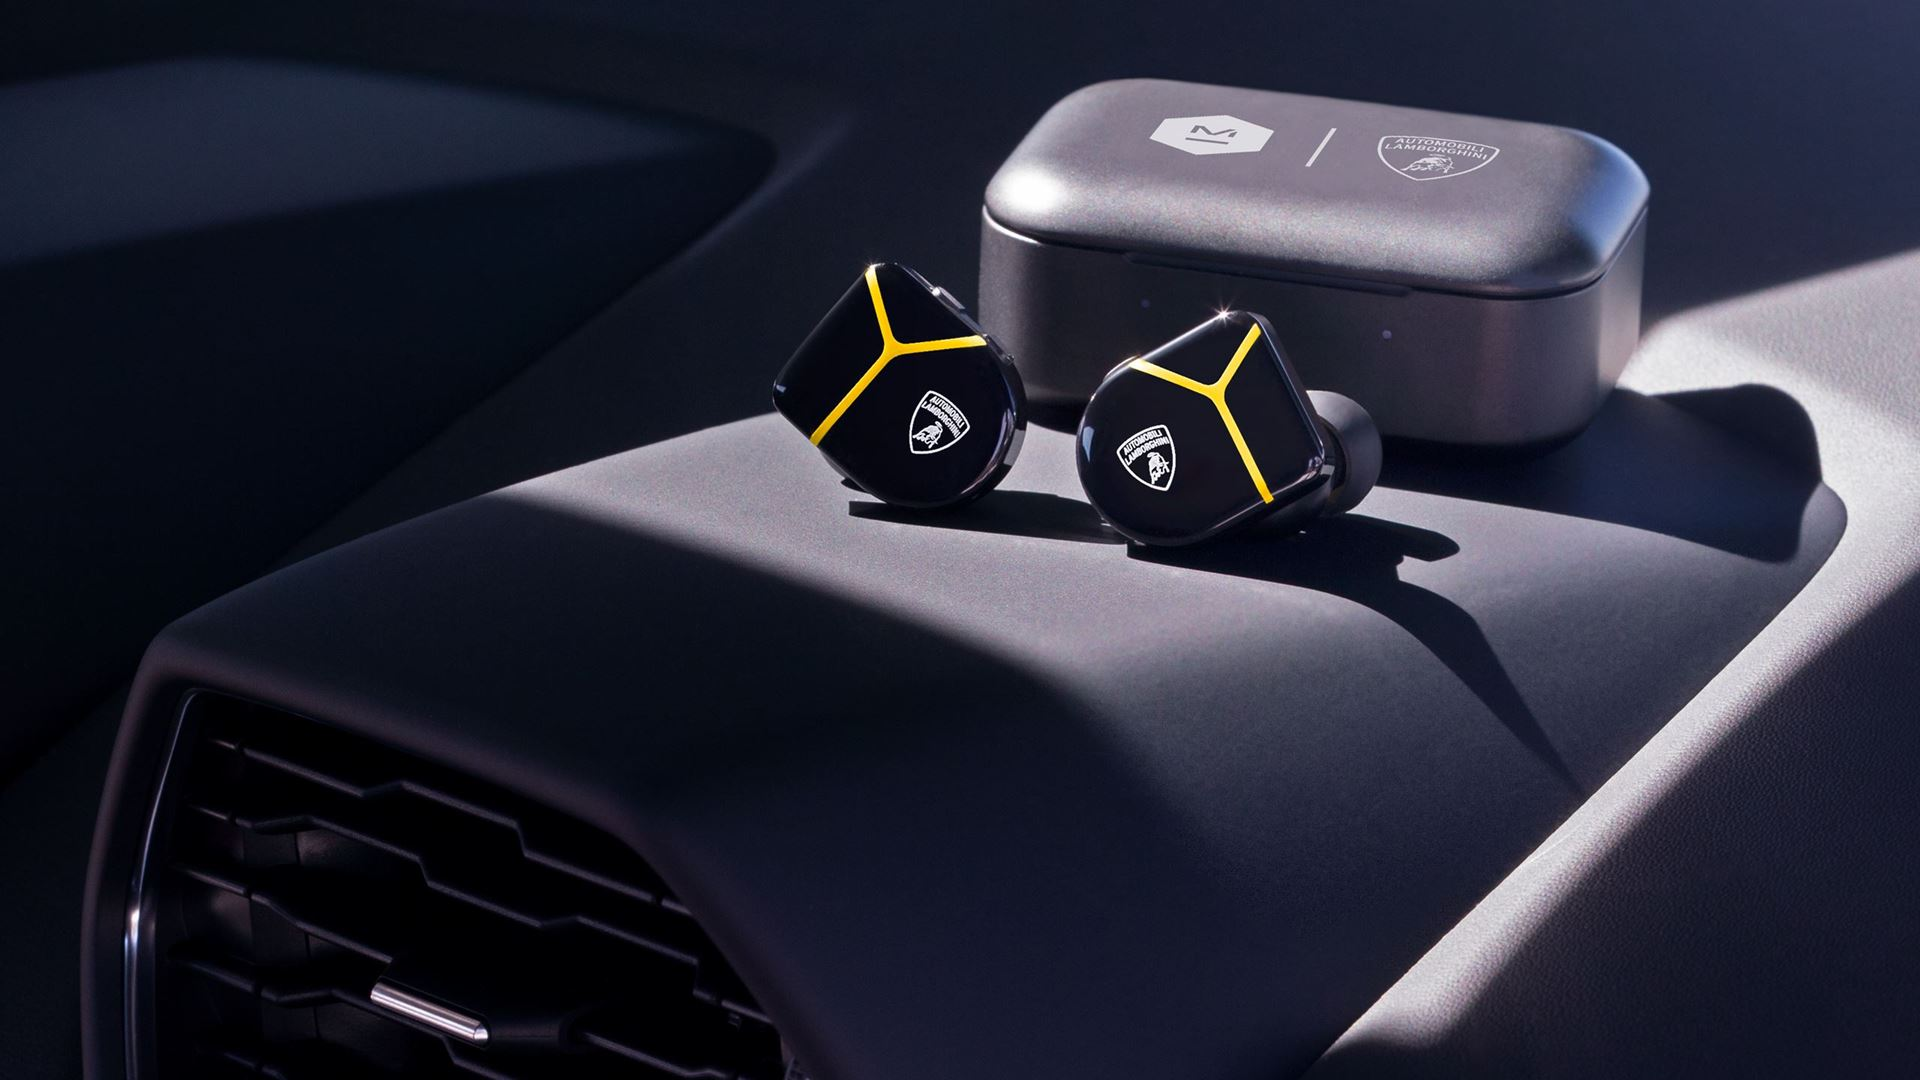 Automobili Lamborghini partners with Master & Dynamic on new headphones and earphones collection - Image 2